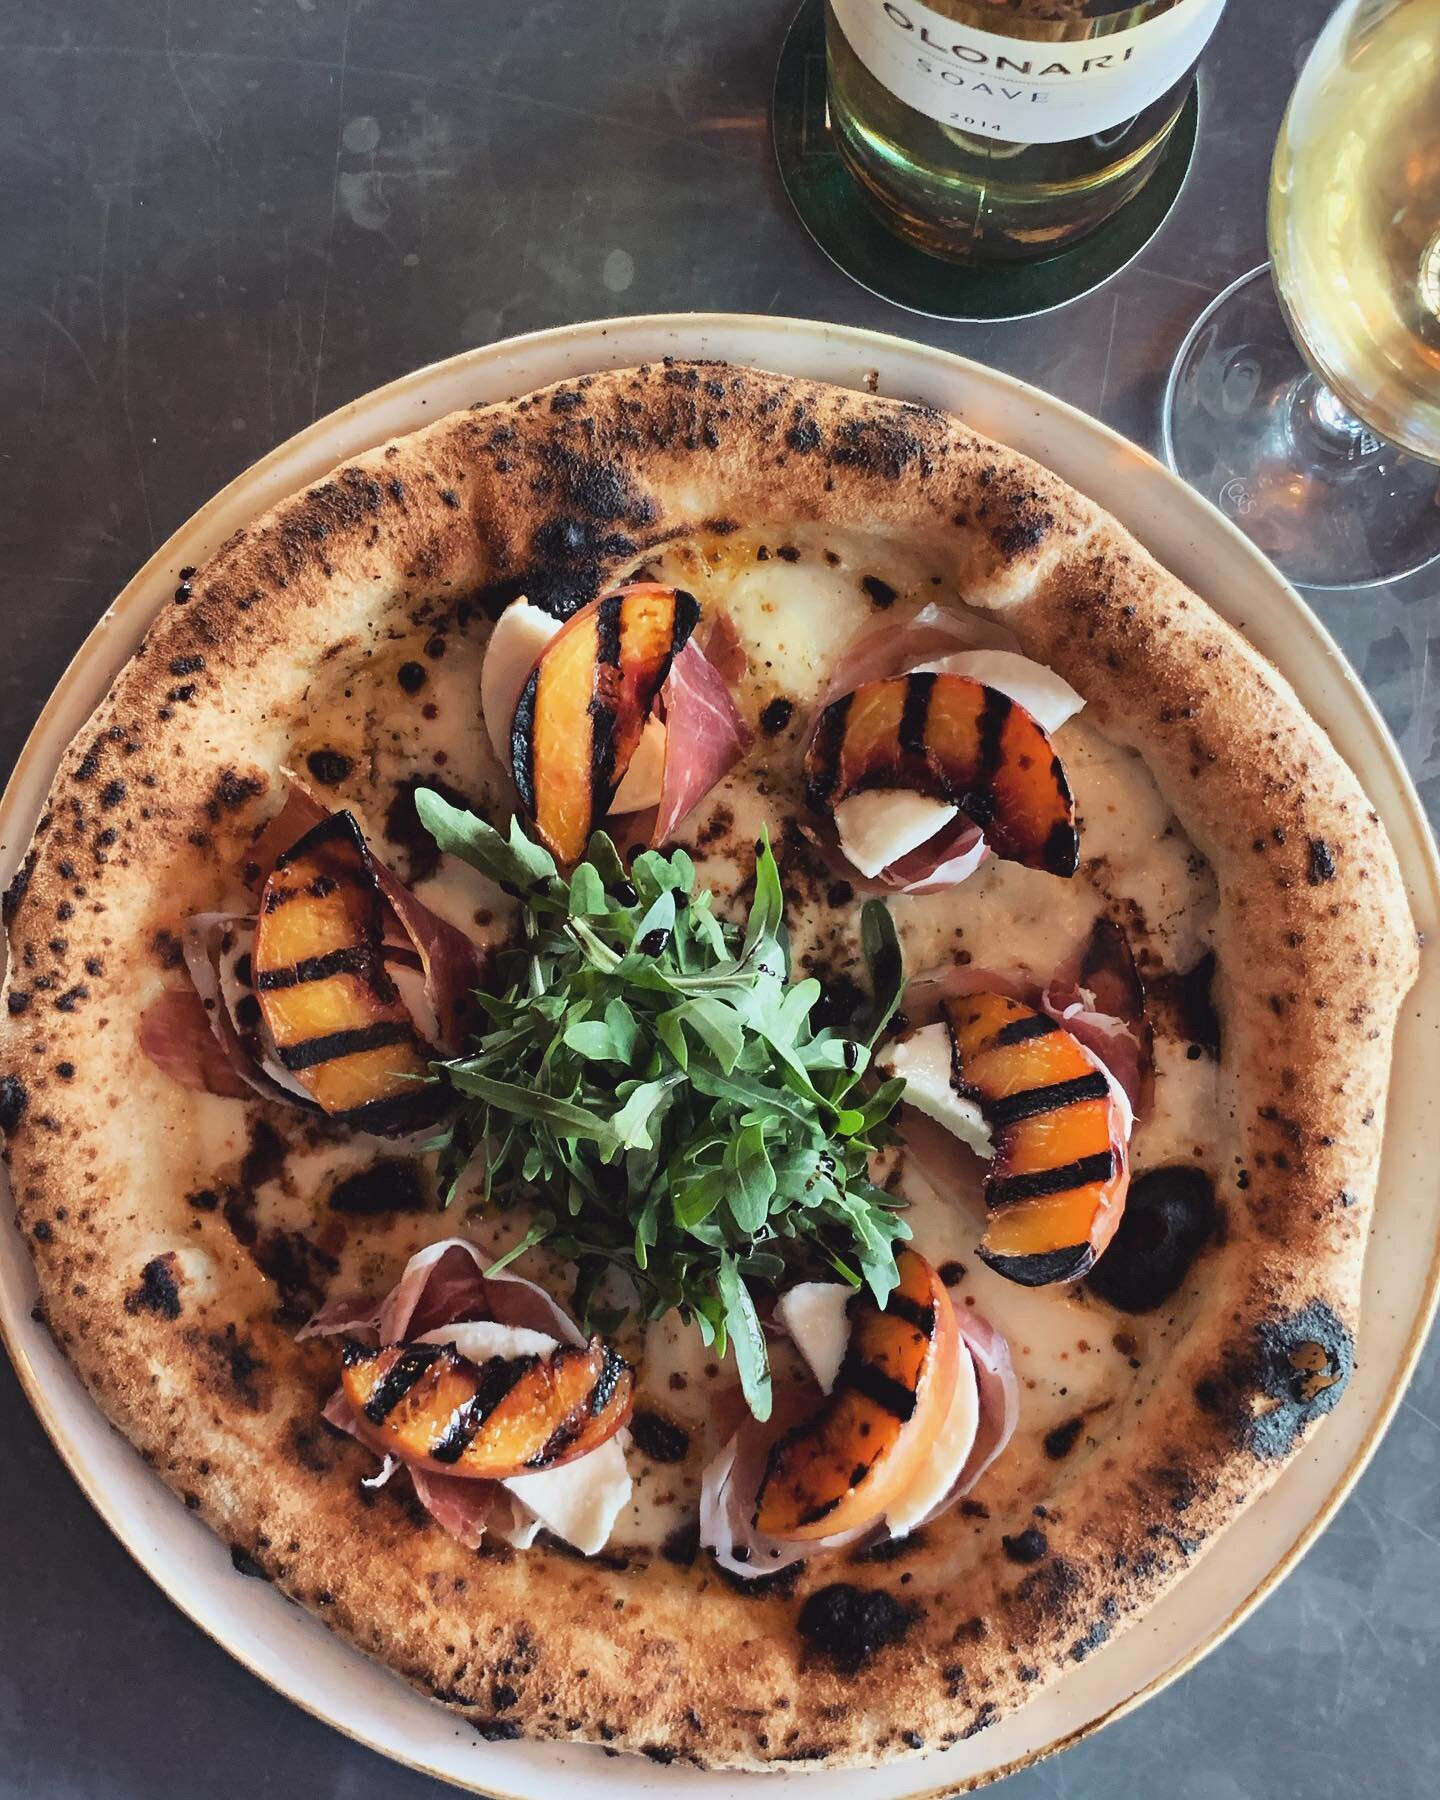 11-17 September - What could possibly be better than the sweetness of a peach and saltiness of prosciutto combined?This week's pizza special features// Ripe peaches, prosciutto di Parma, buffalo mozzarella, roquette and #evoo. //